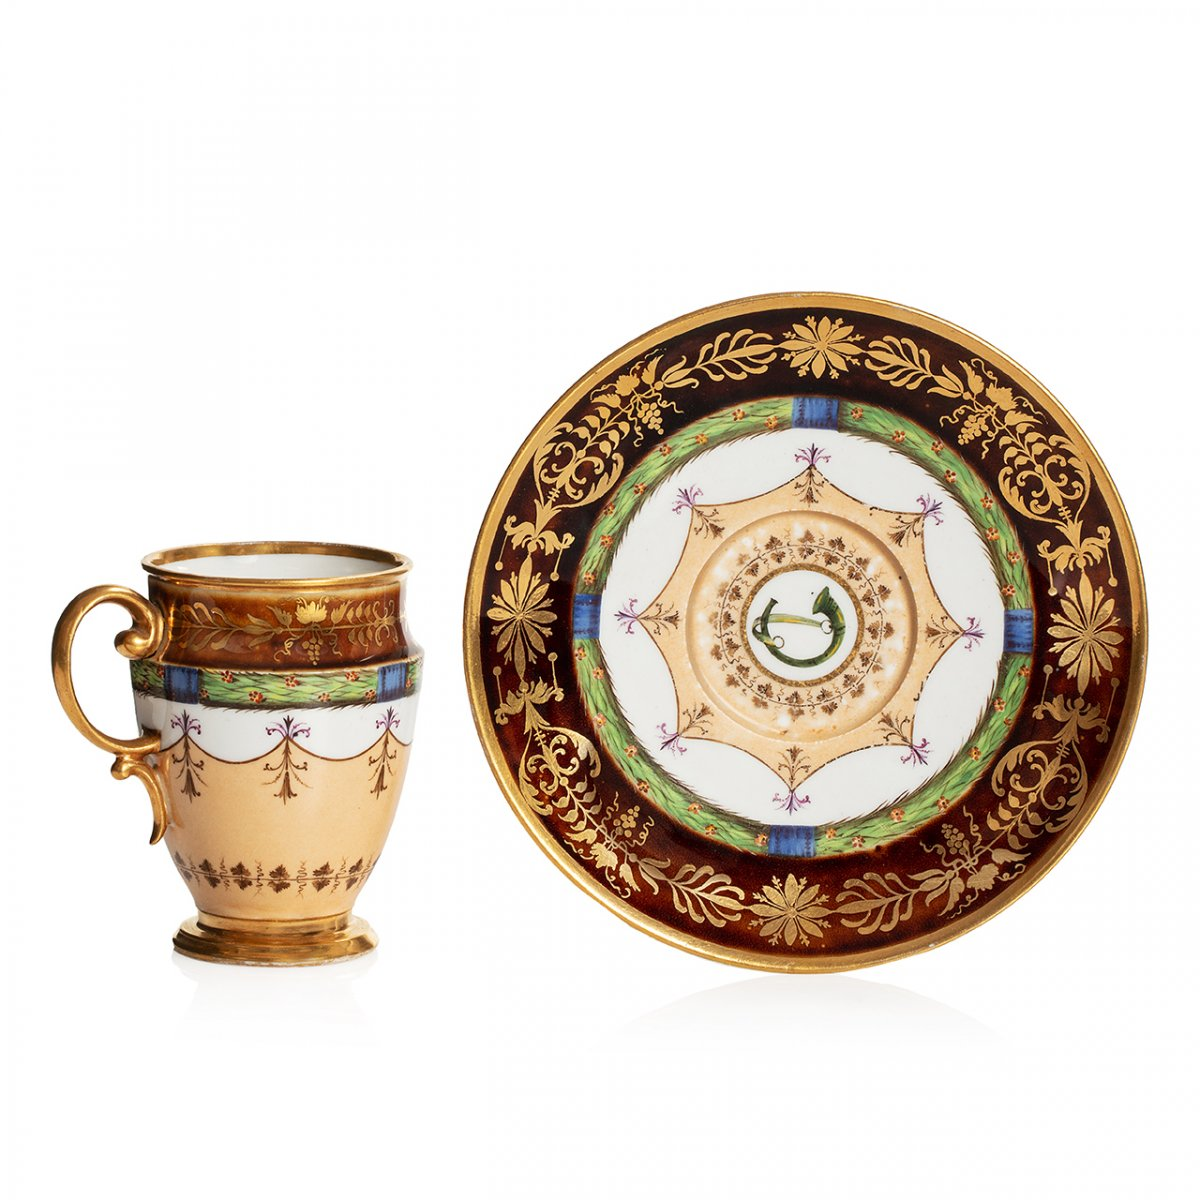 Rare Sèvres Porcelain Cup And Saucer With A Tortoiseshell Ground, Consulat Period